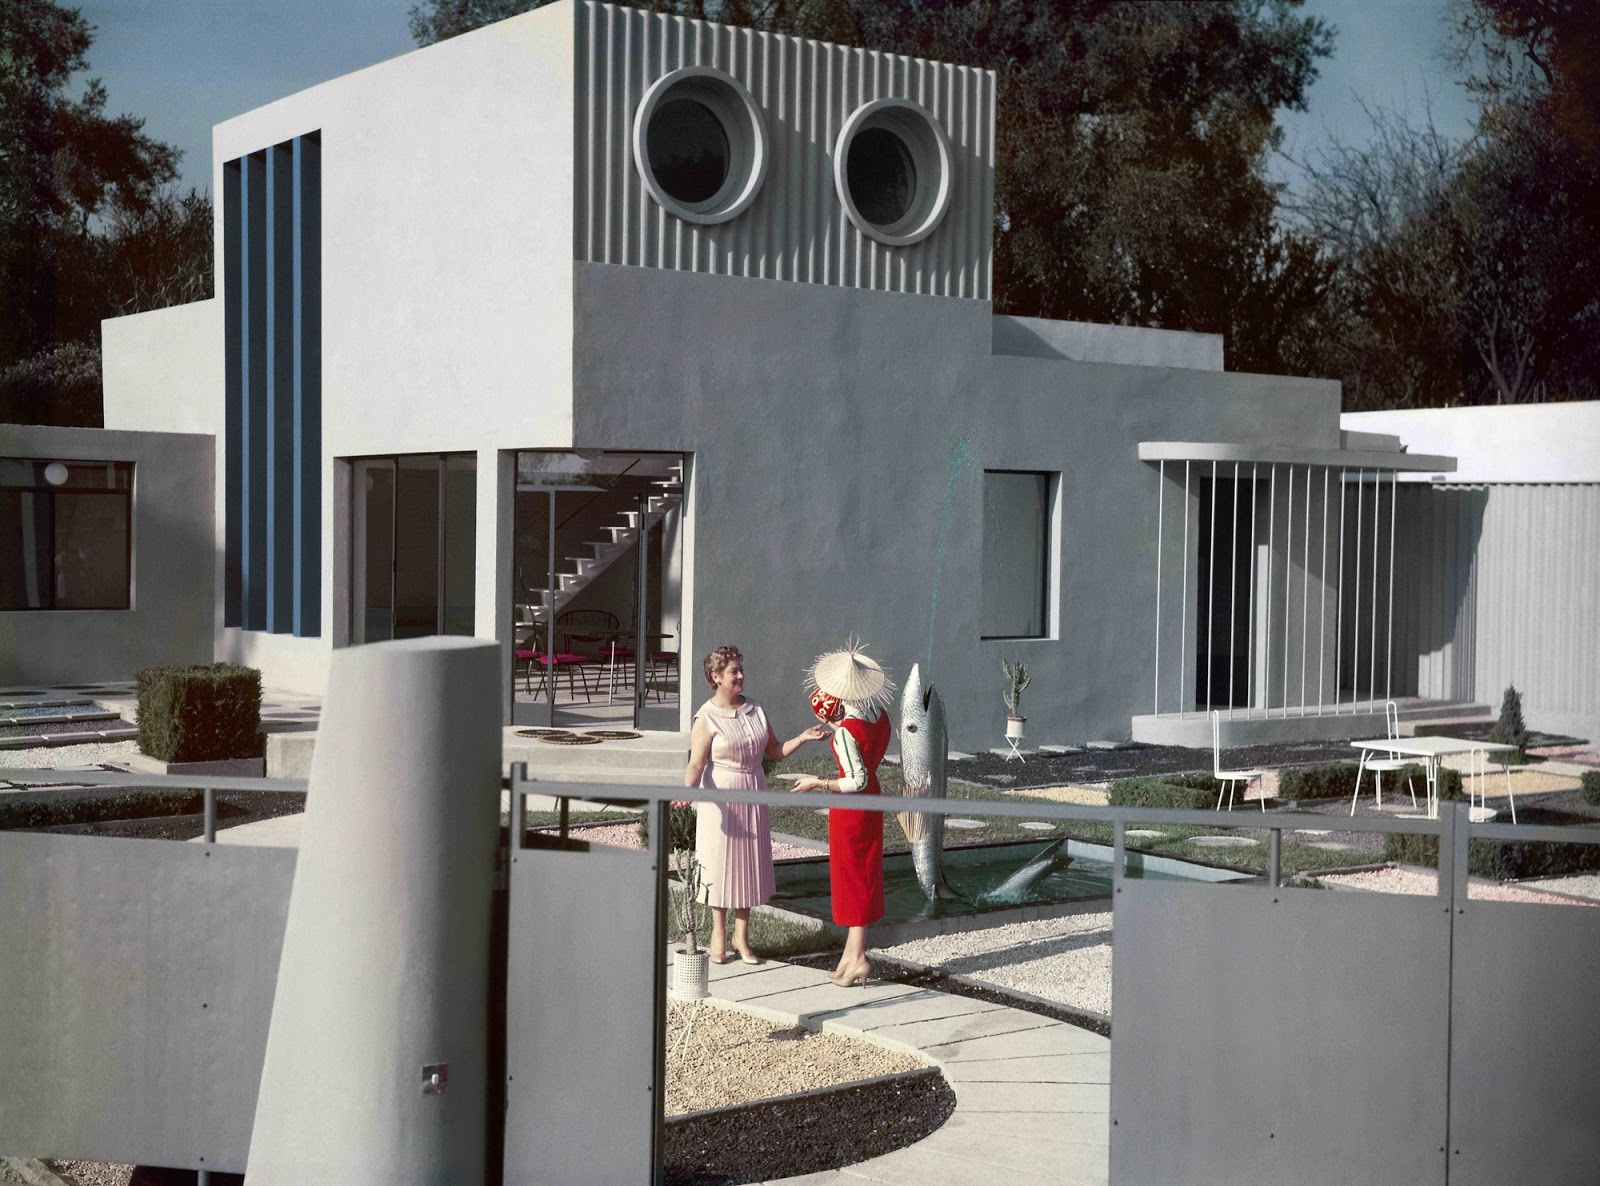 Style inspiration mon oncle style sixties london fashion blog - Jacques tati mon oncle ...